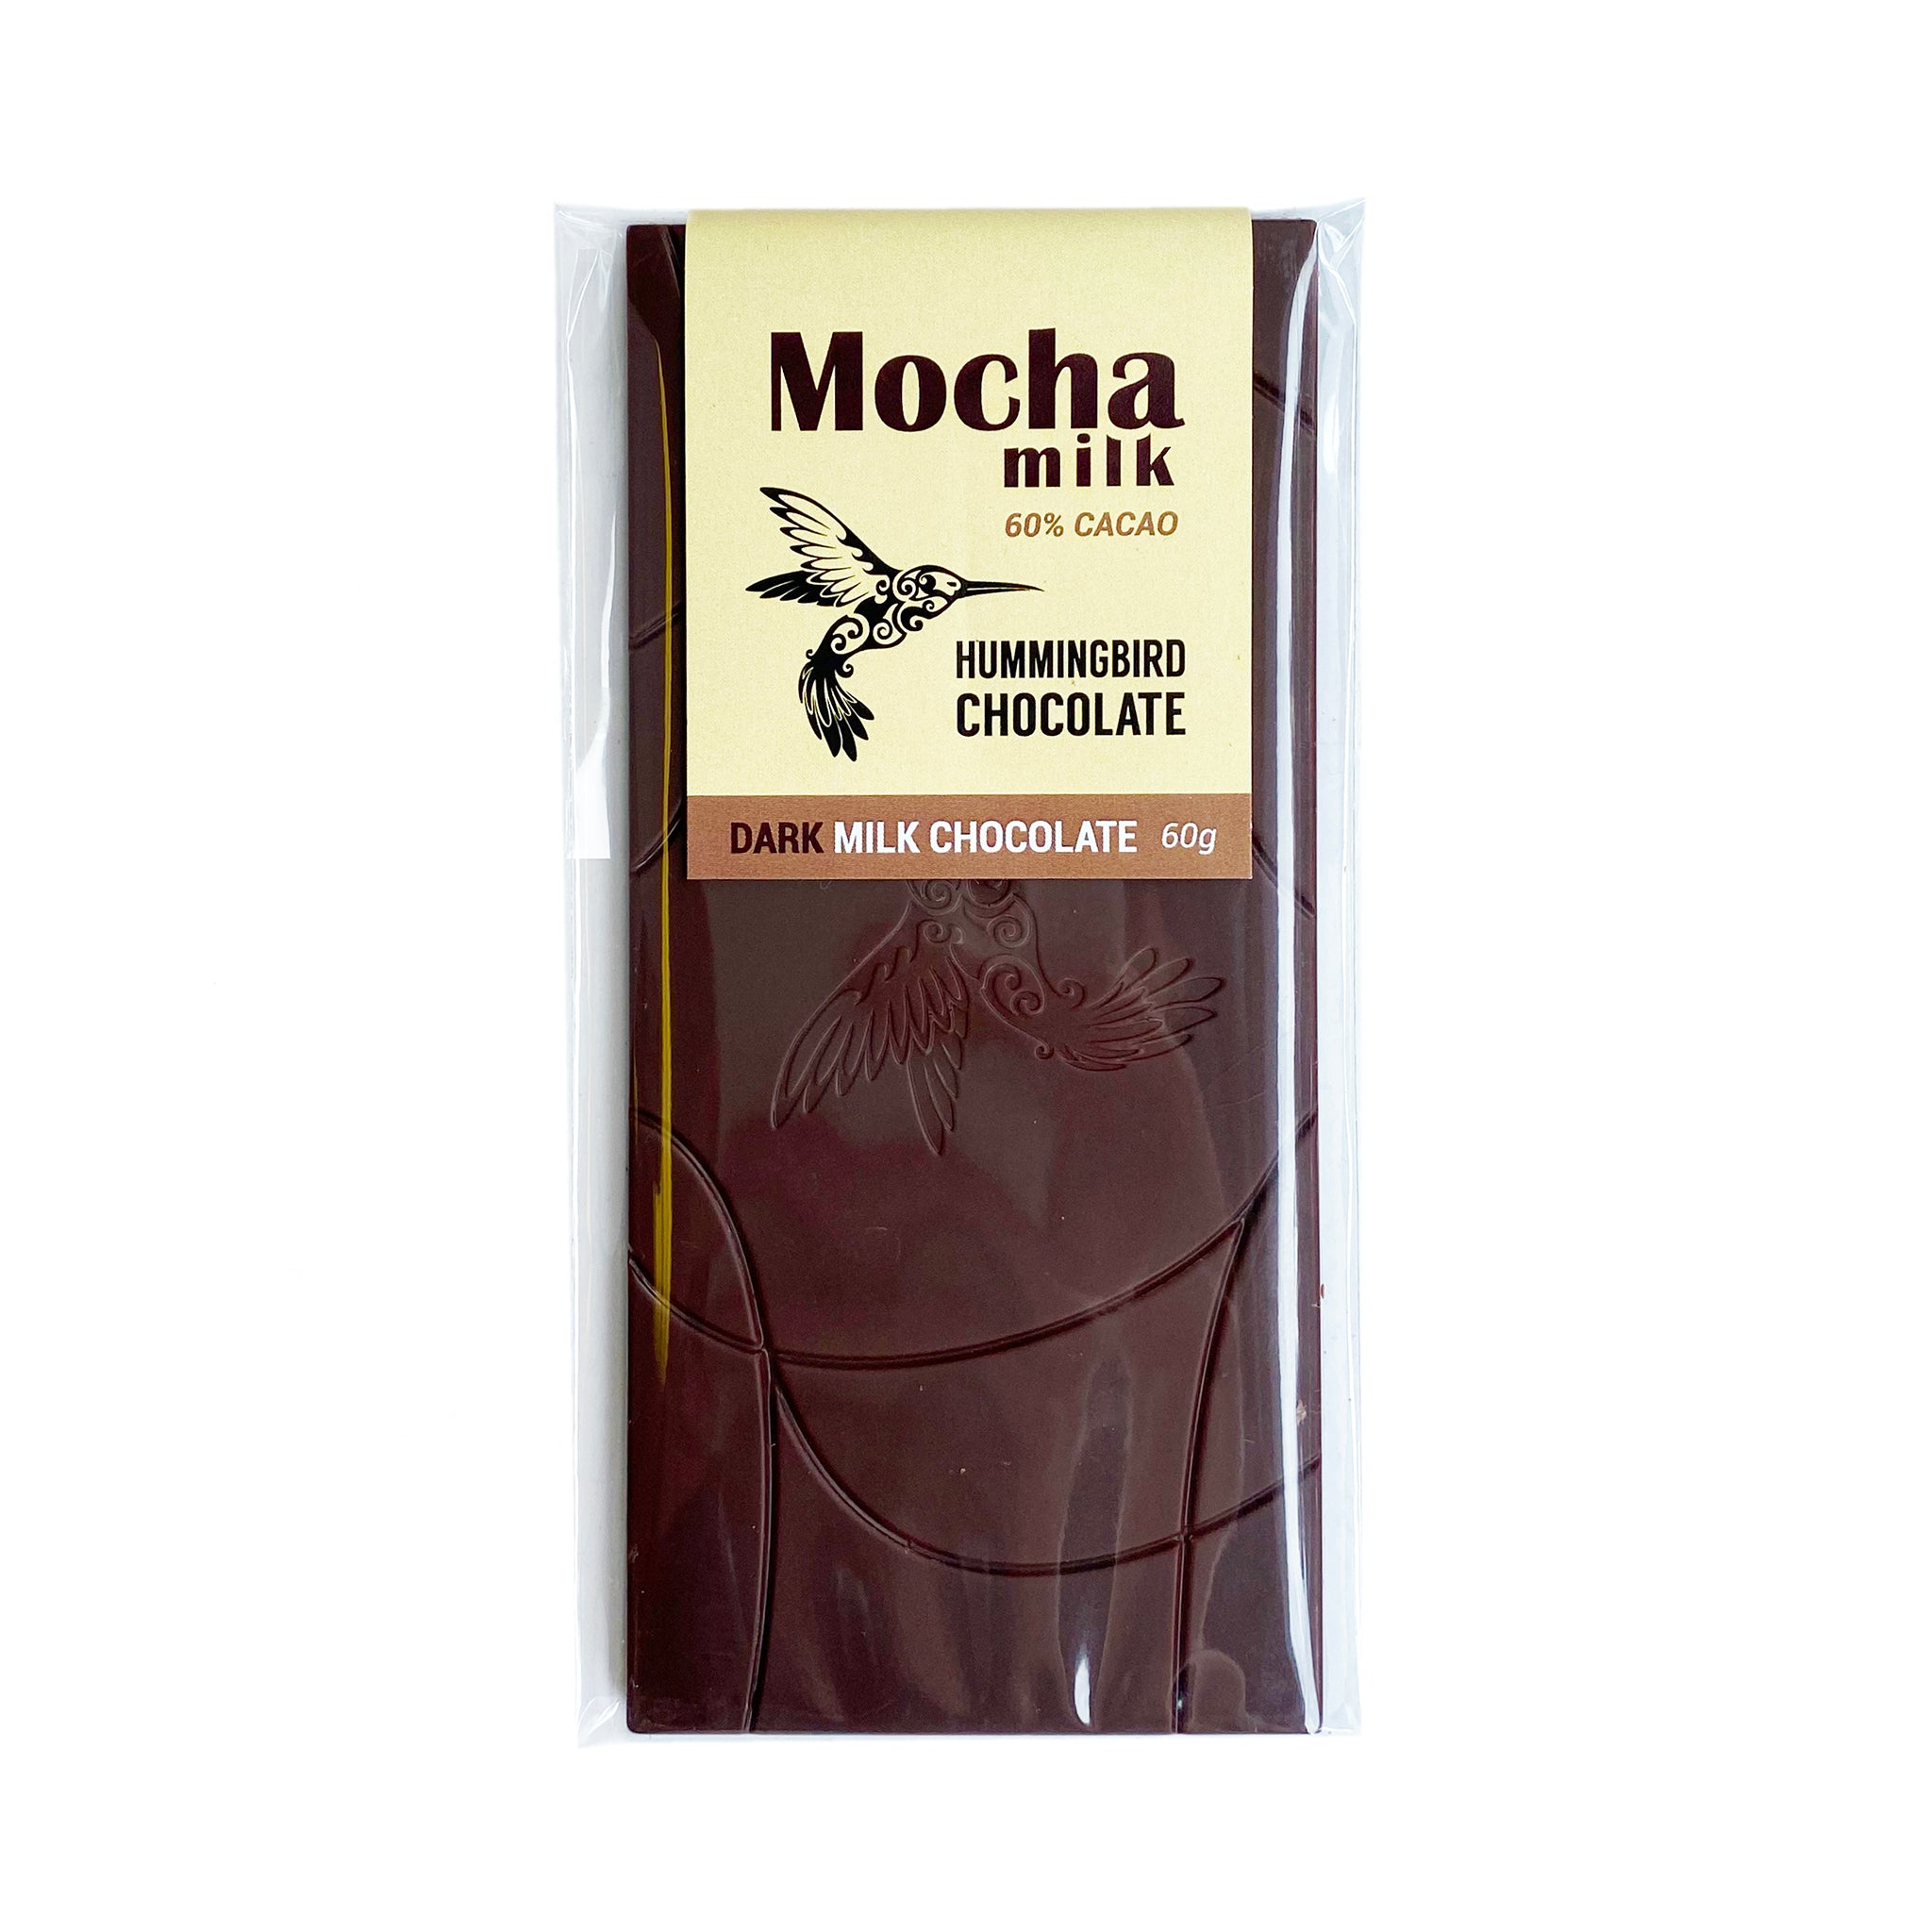 Hummingbird Chocolate Mocha Milk Chocolate Bar, 60% cacao, 60g dark-milk chocolate